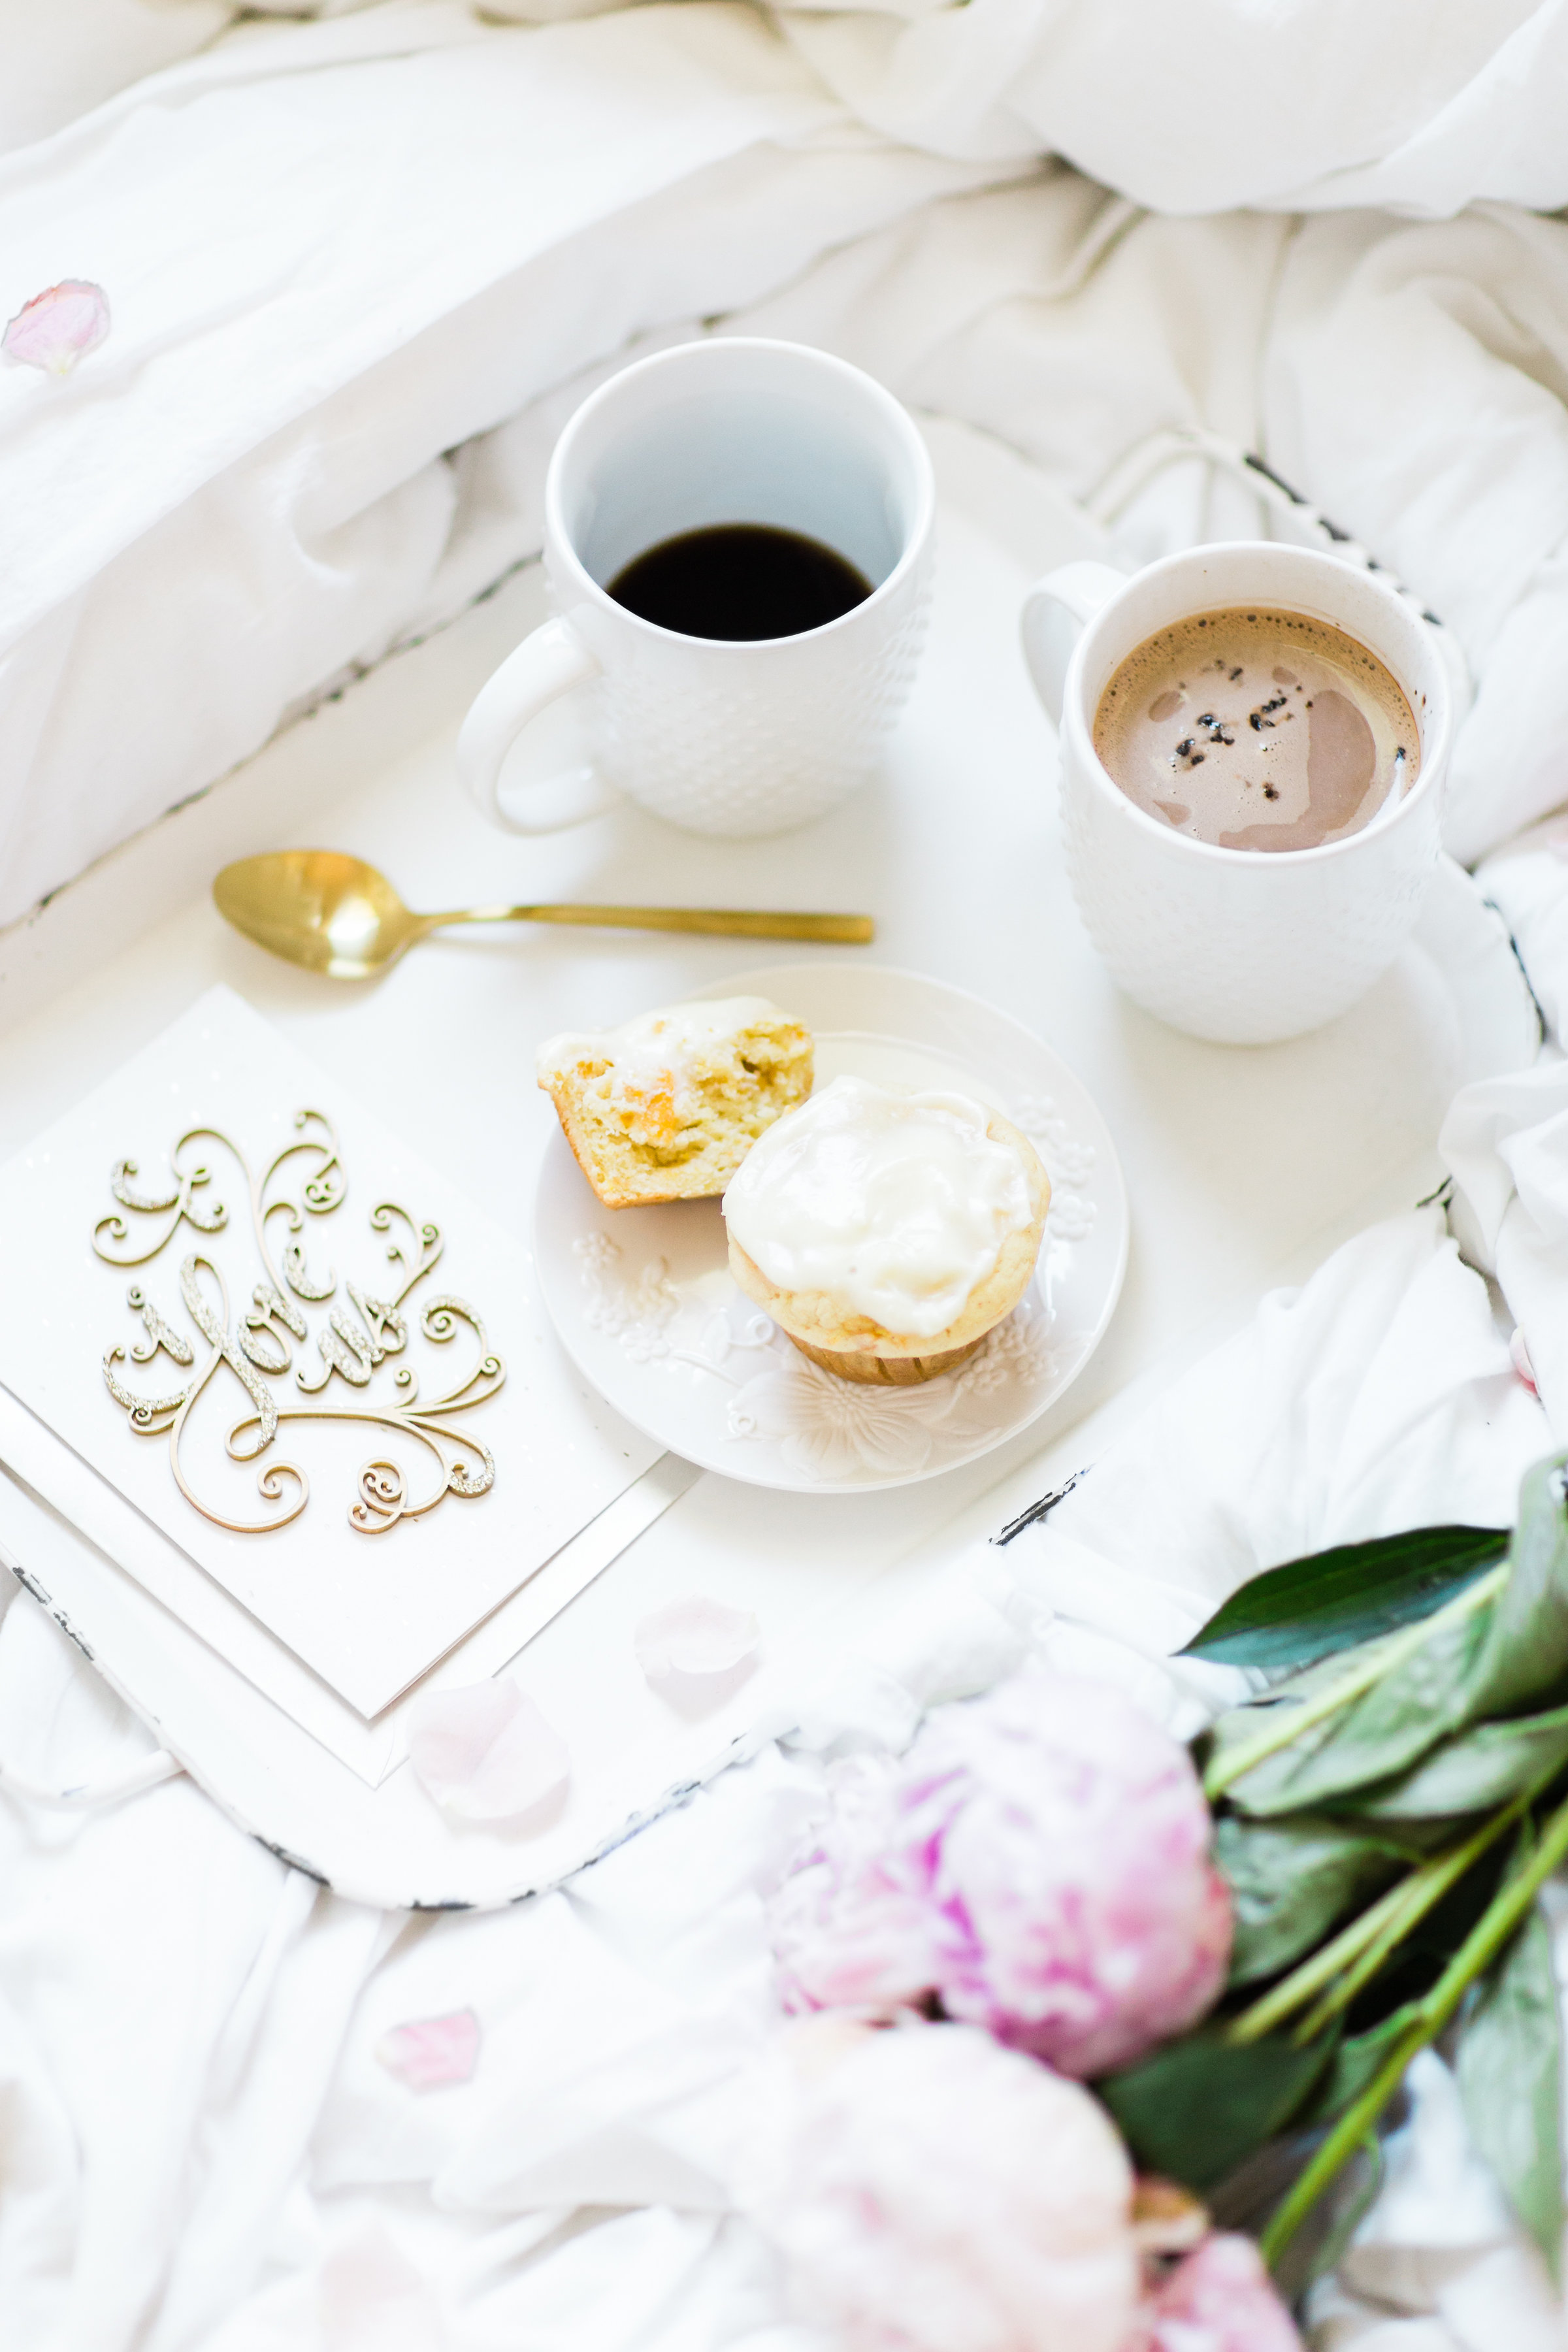 Celebrating love in simple and sweet ways with the perfect card and breakfast in bed. #HallmarkAtWalgreens #ad | glitterinc.com | @glitterinc